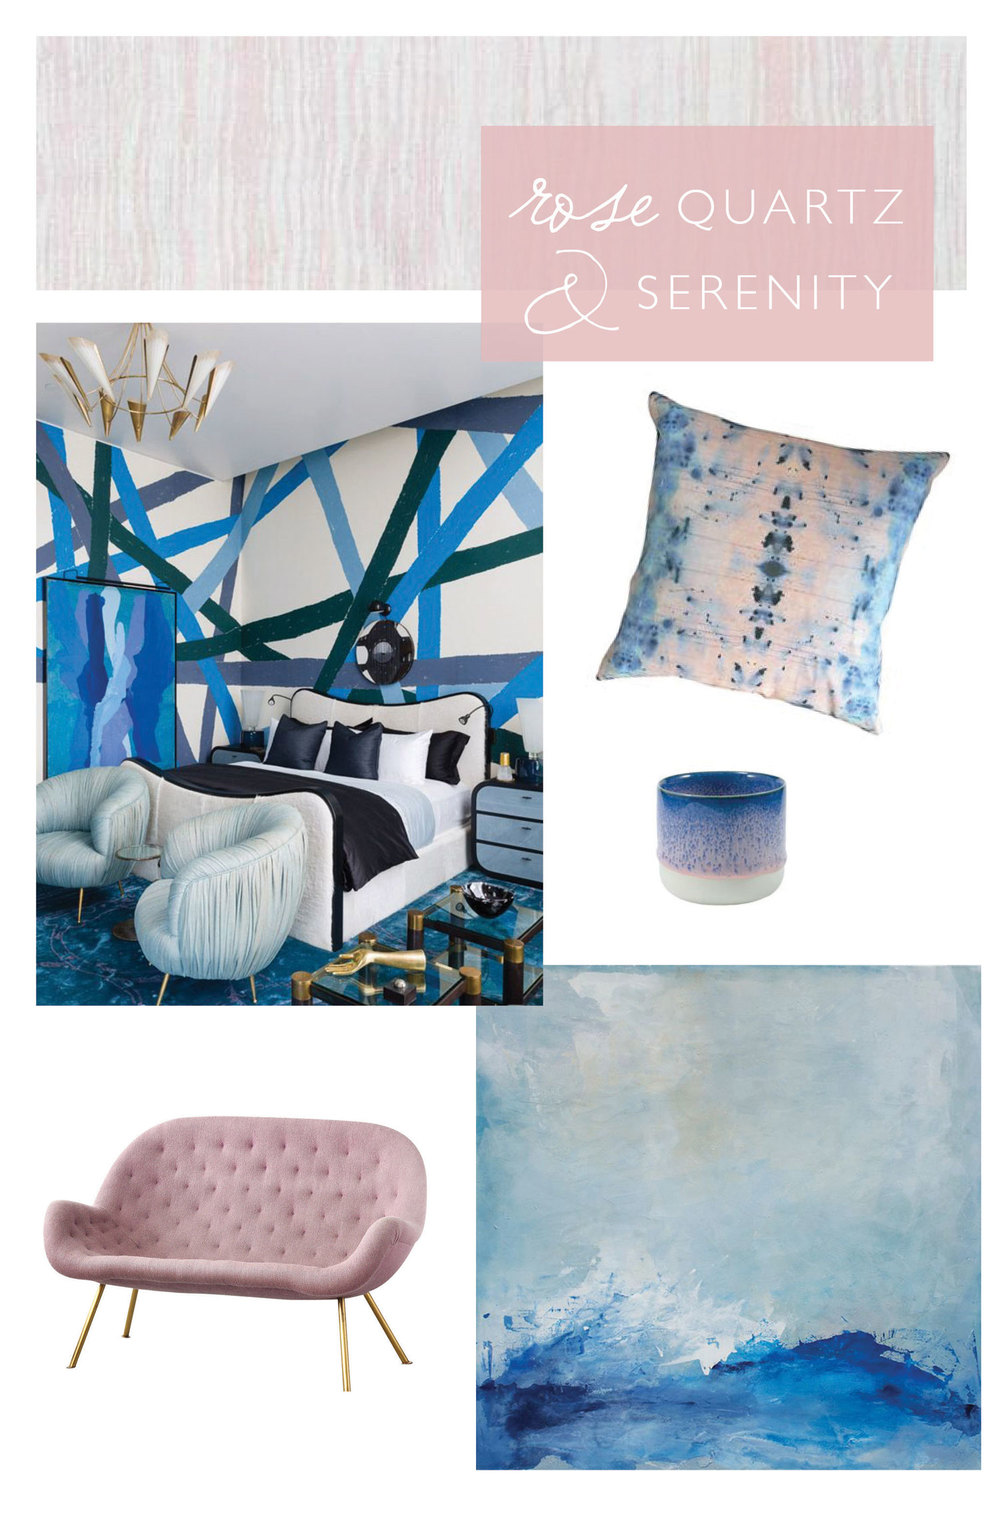 CLOTH & KIND // Hue: Rose Quartz & Serenity by Contributing Editor Molly Velte